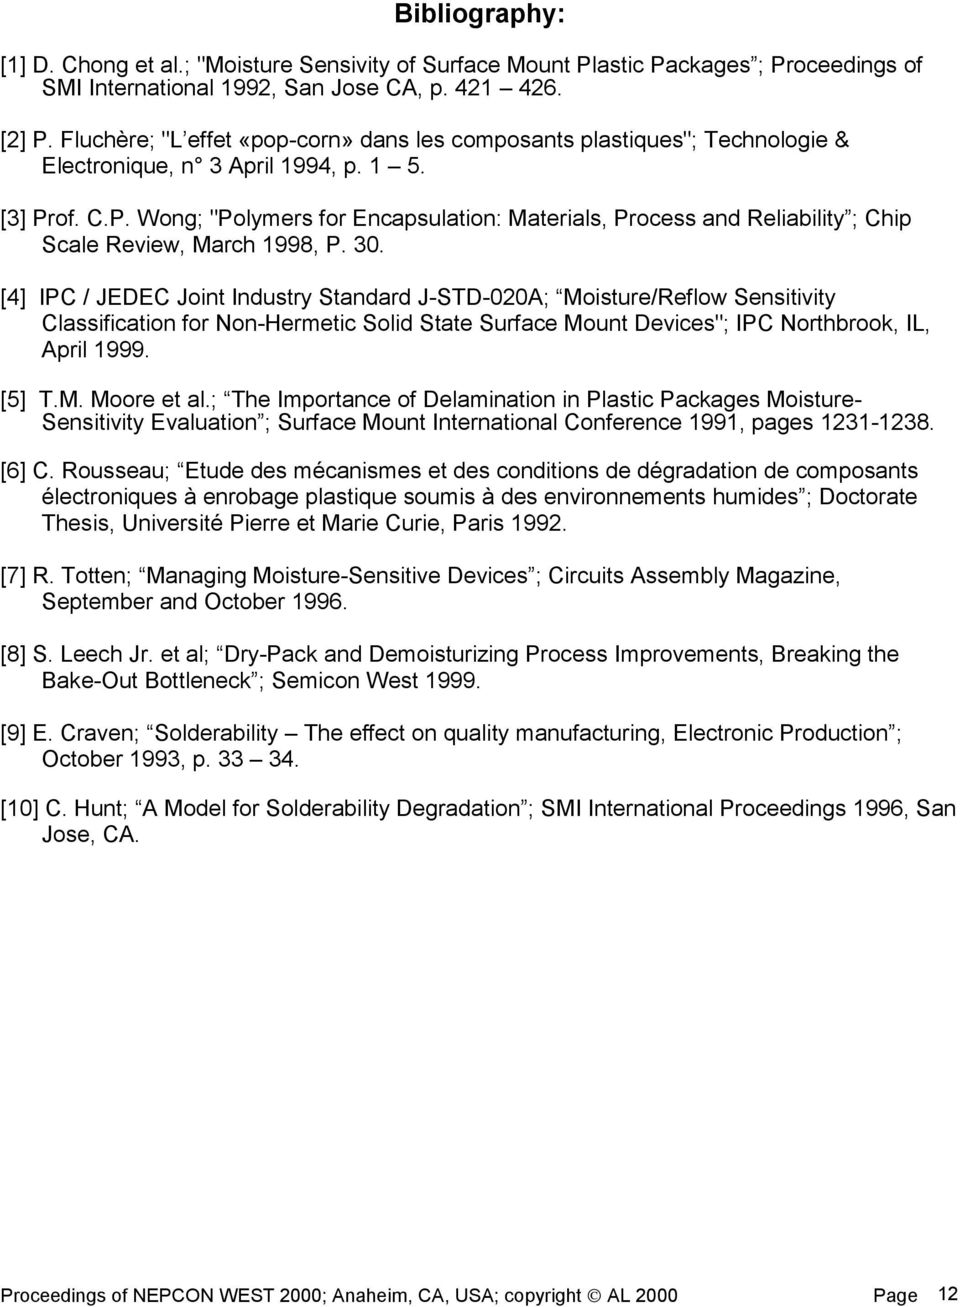 "of. C.P. Wong; ""Polymers for Encapsulation: Materials, Process and Reliability ; Chip Scale Review, March 1998, P. 30."